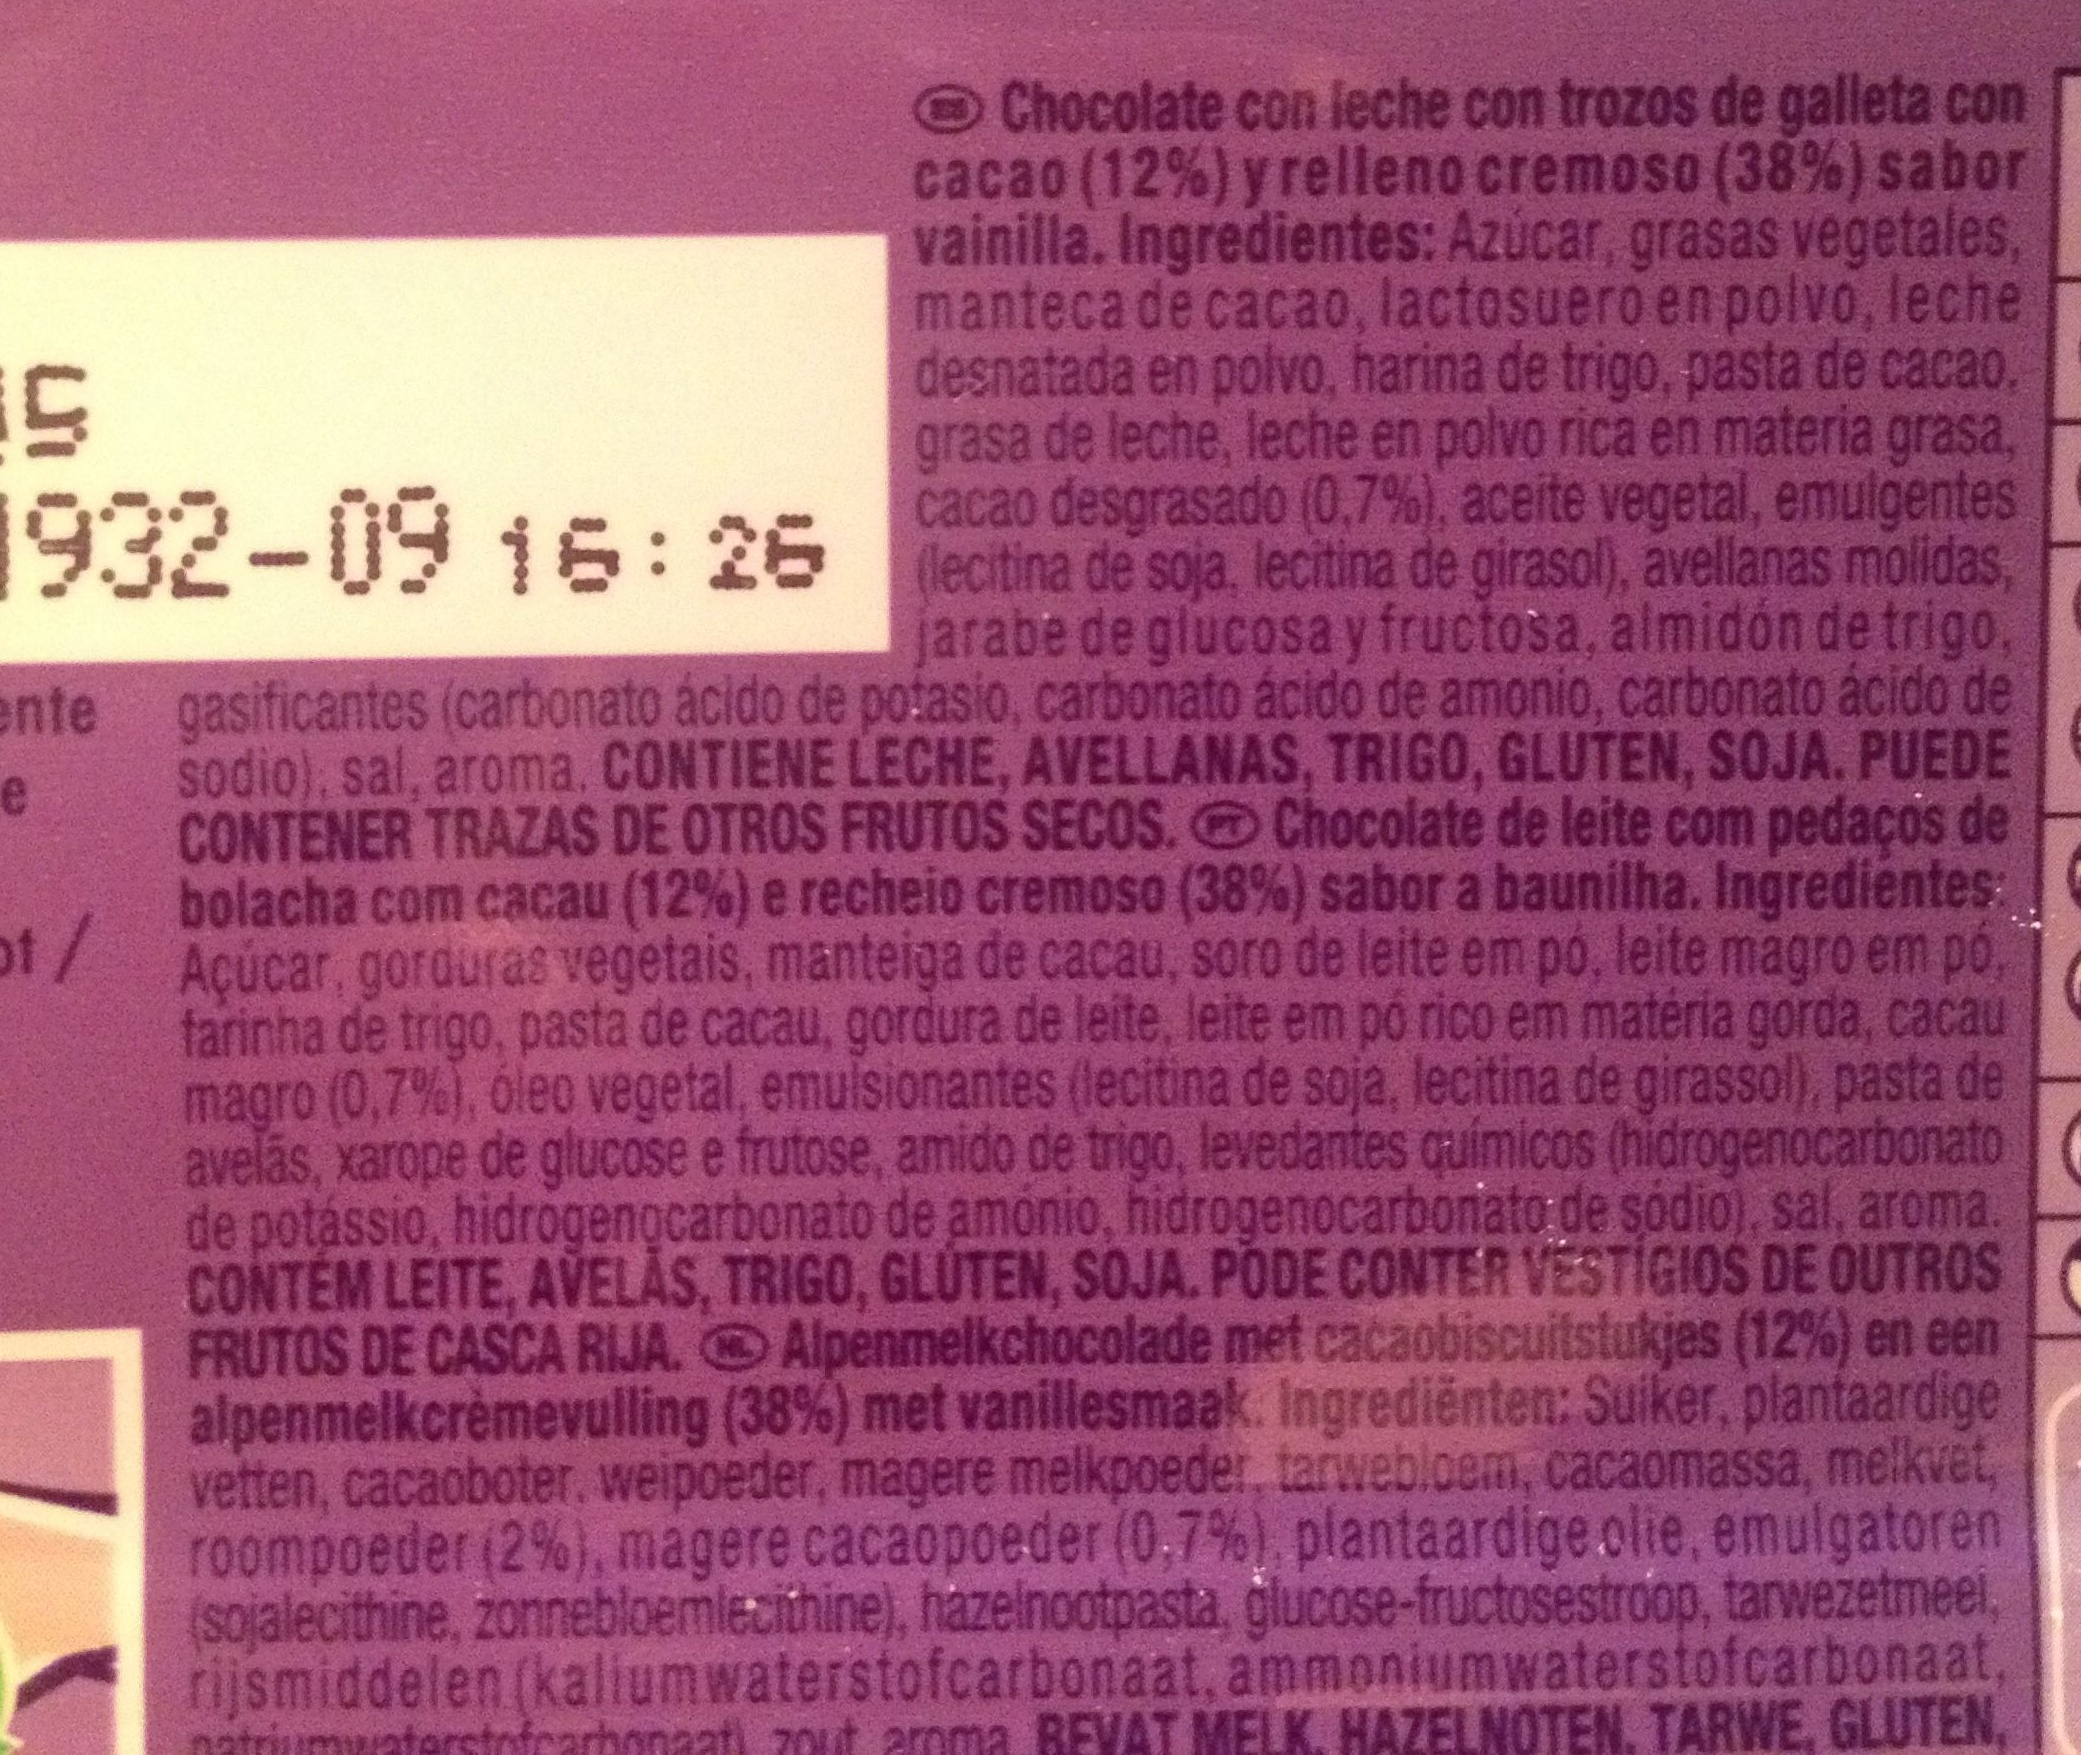 Milka chocolate oreo cookies and creme - Ingredienti